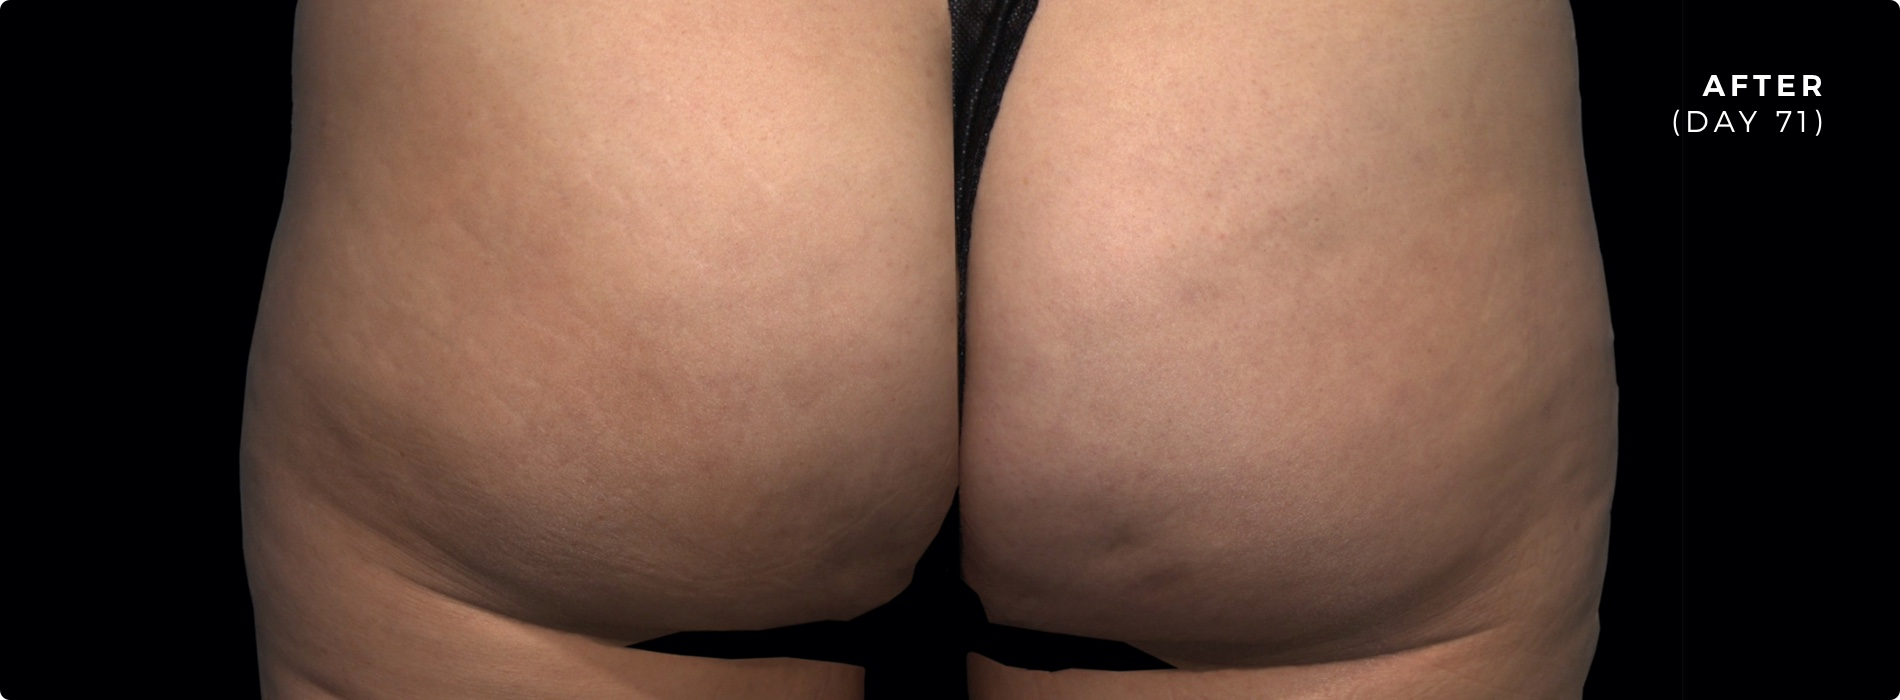 QWO Cellulite Reduction After 2